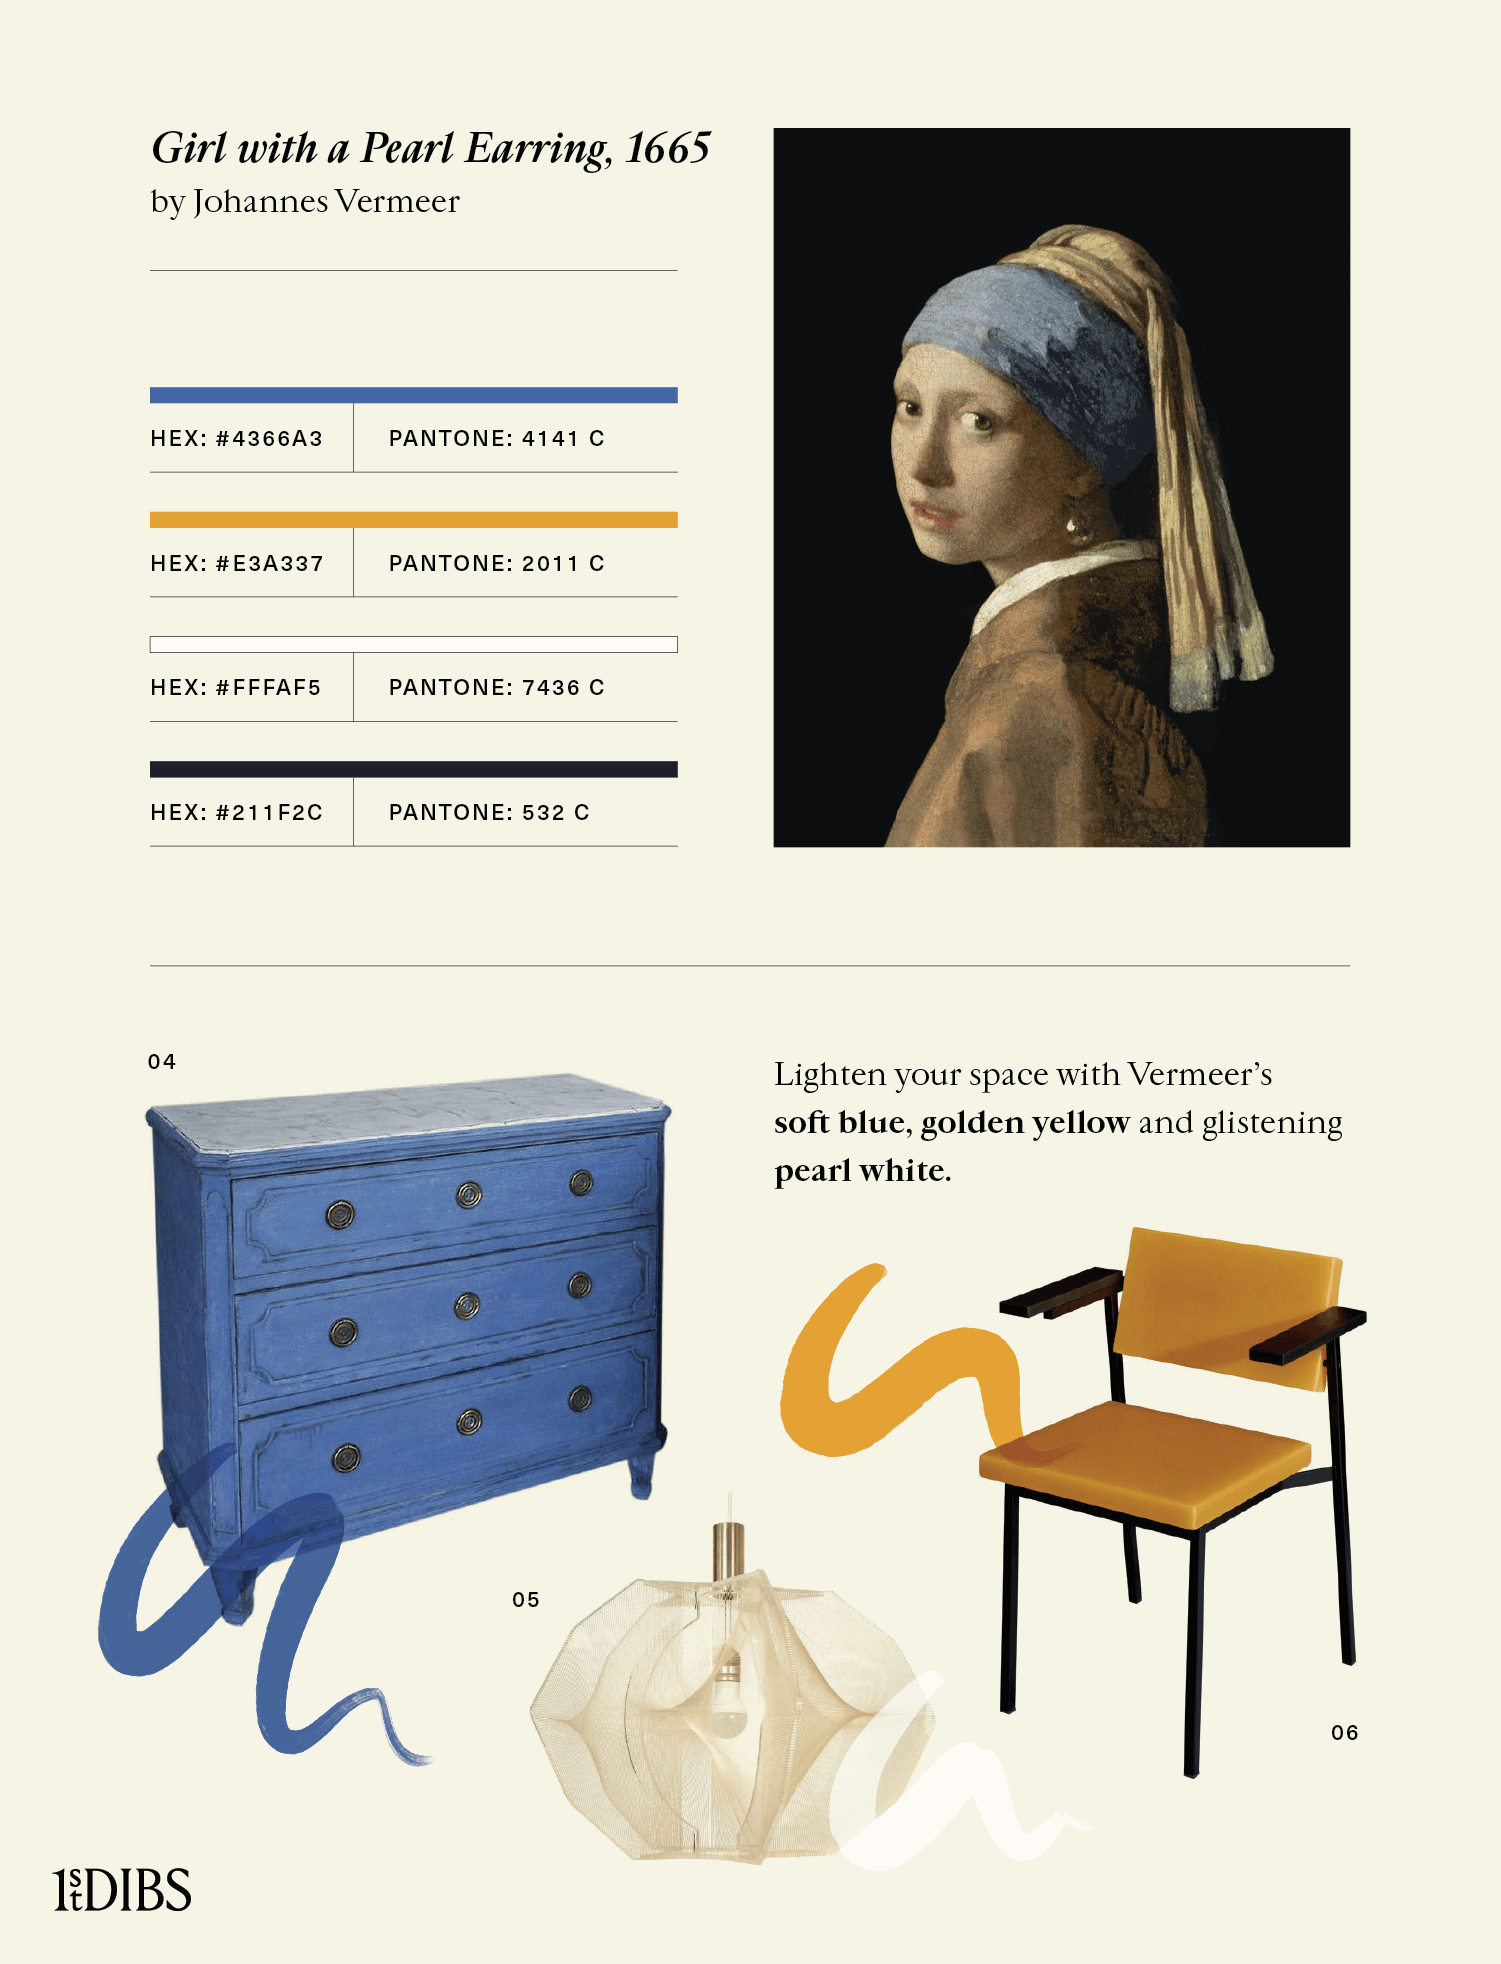 Johannes Vermeer's Girl with a Pearl Earring